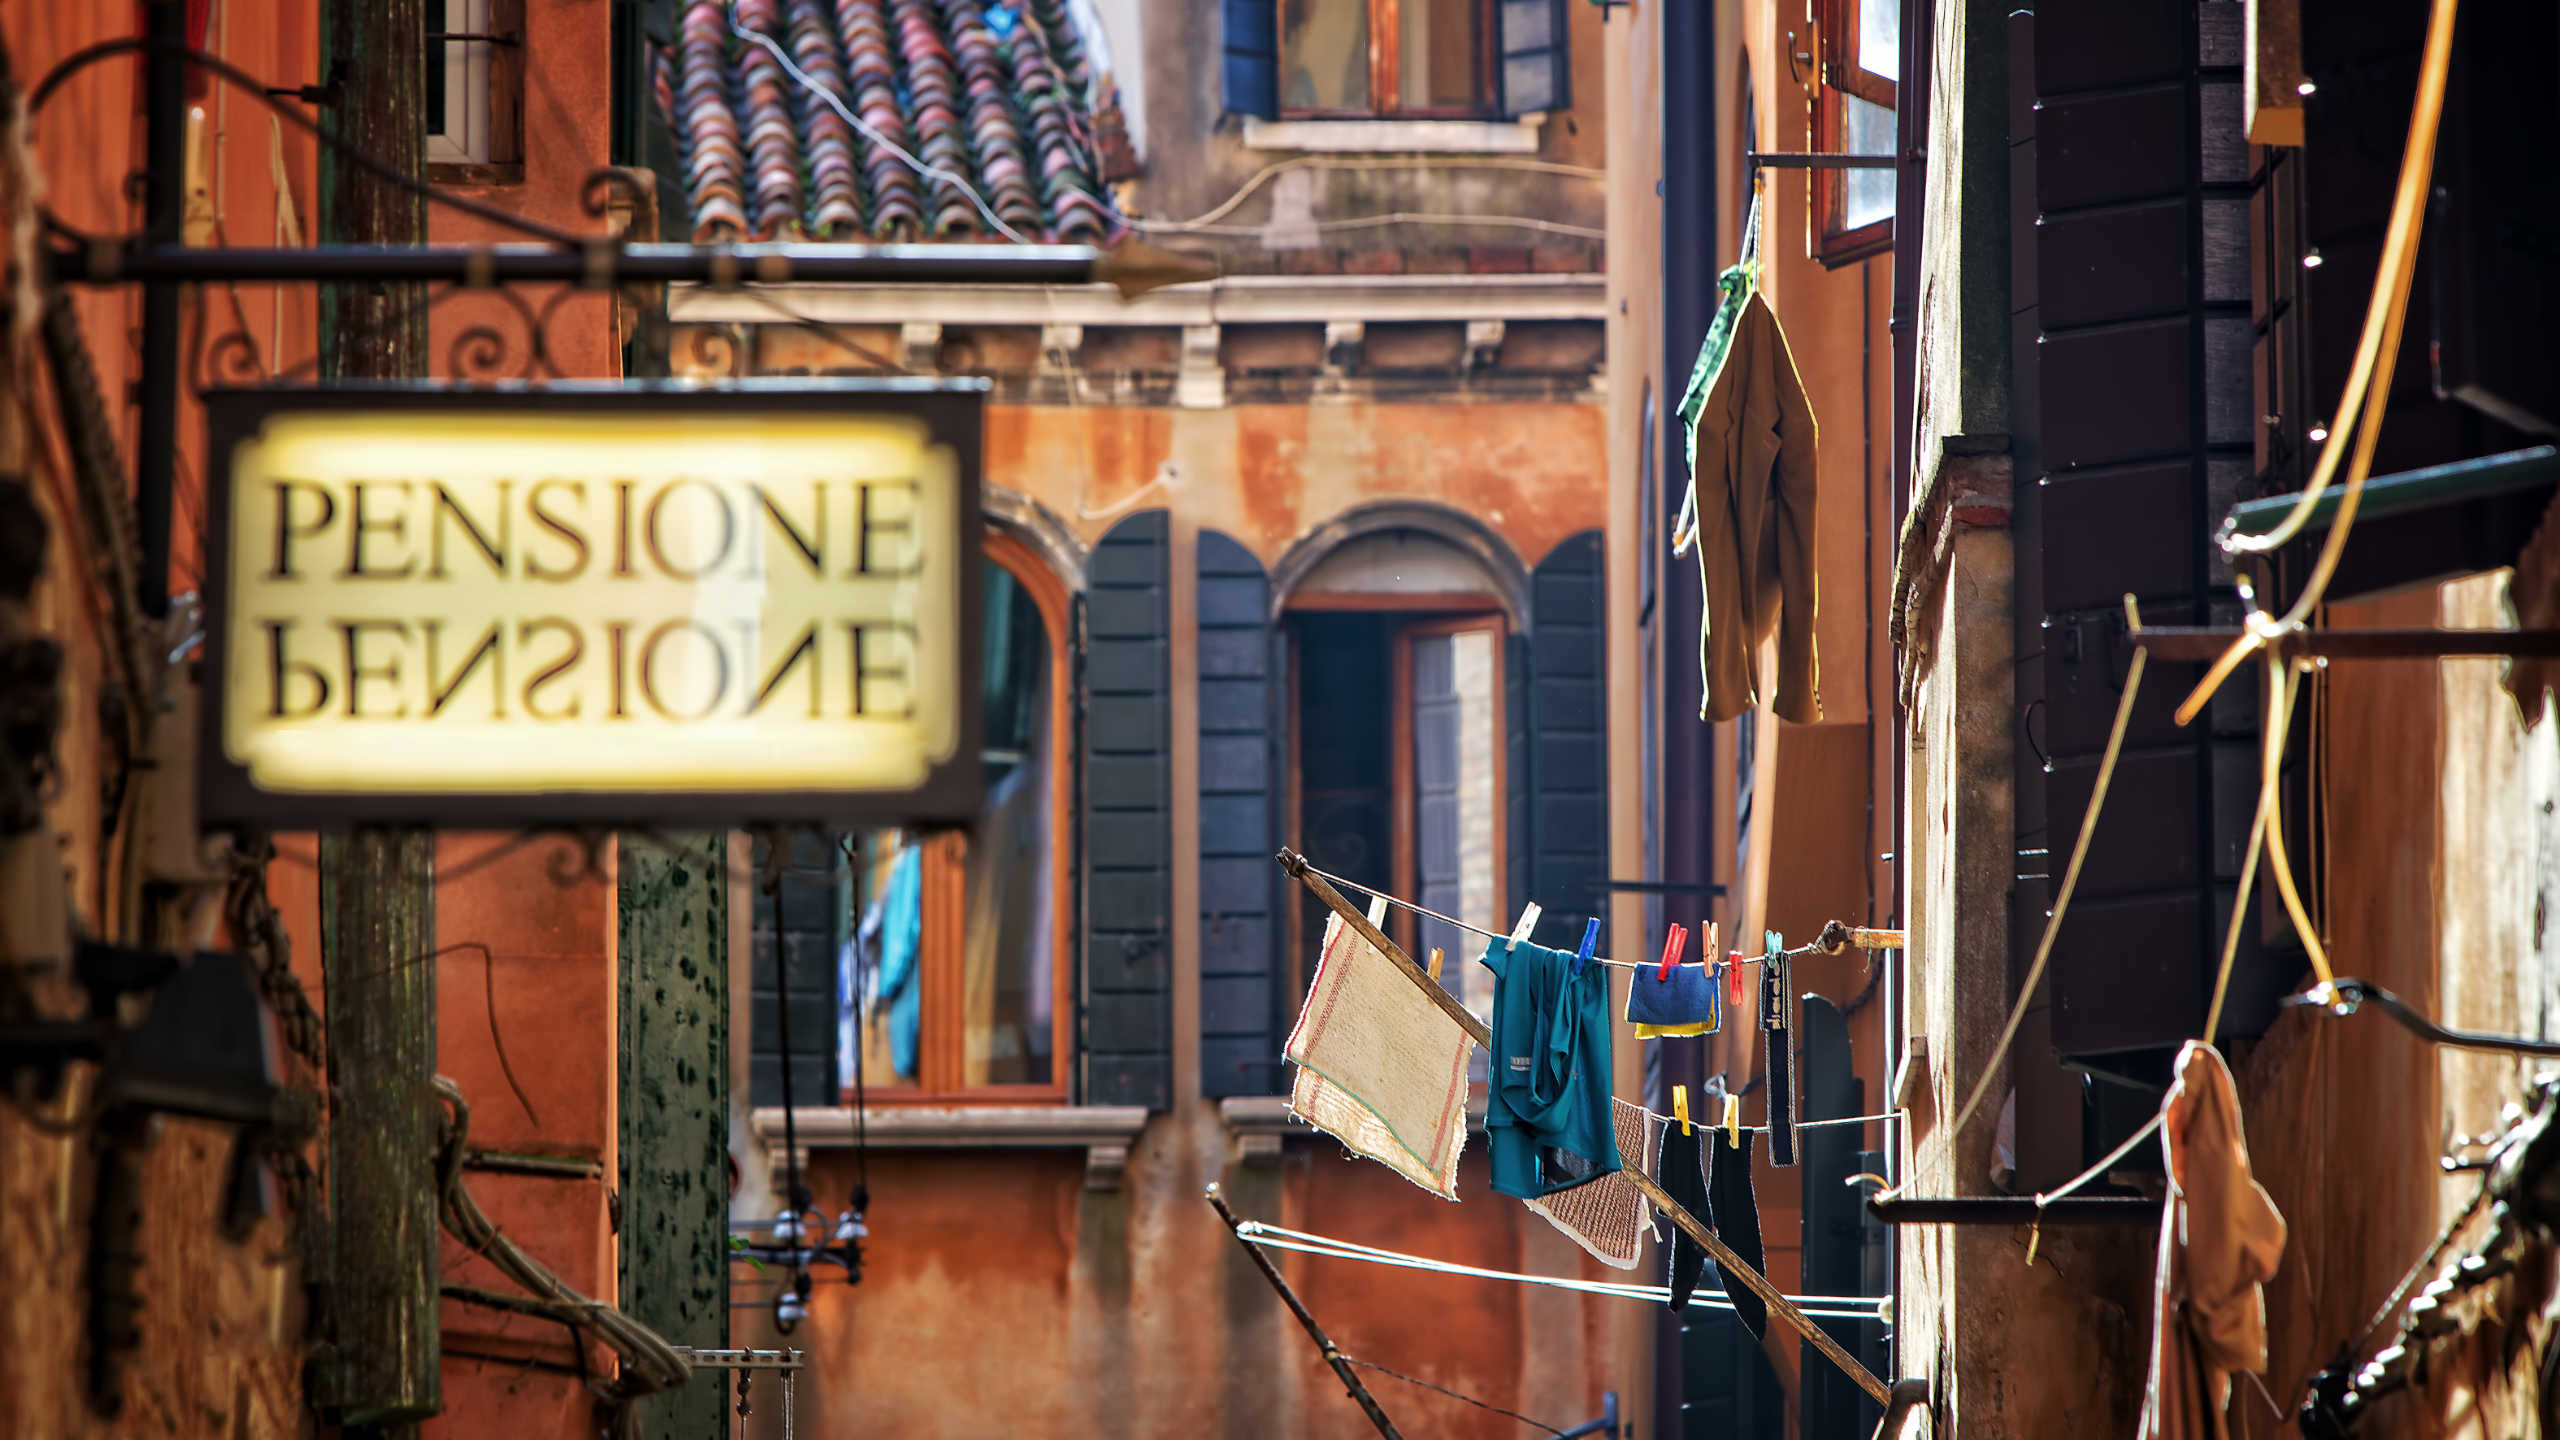 A sign of a pensione in an alley.